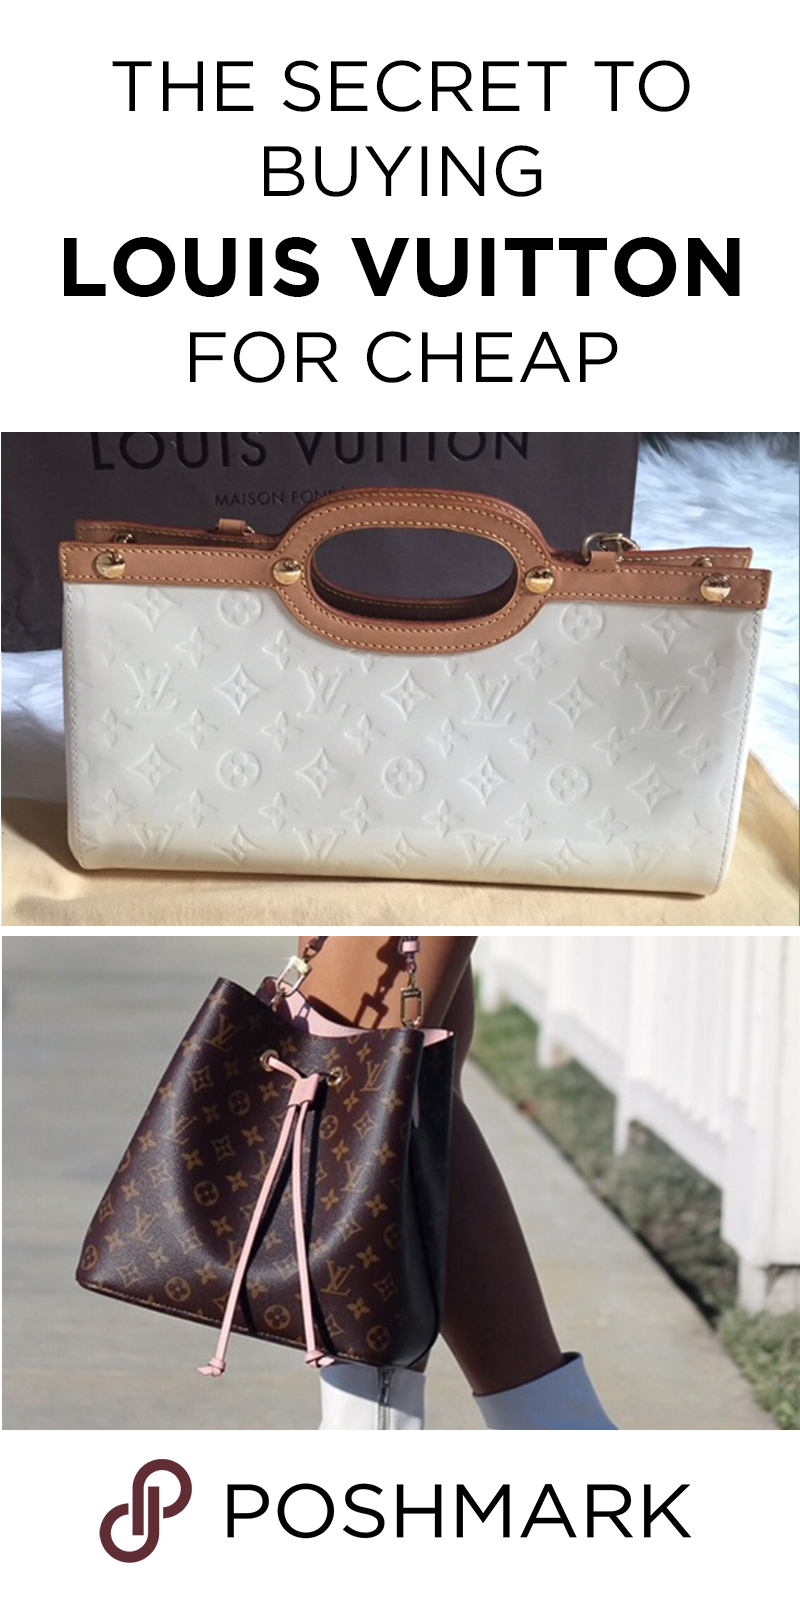 Pre Owned Louis Vuitton And Other Designer Luxury Handbag Brands For On Poshmark